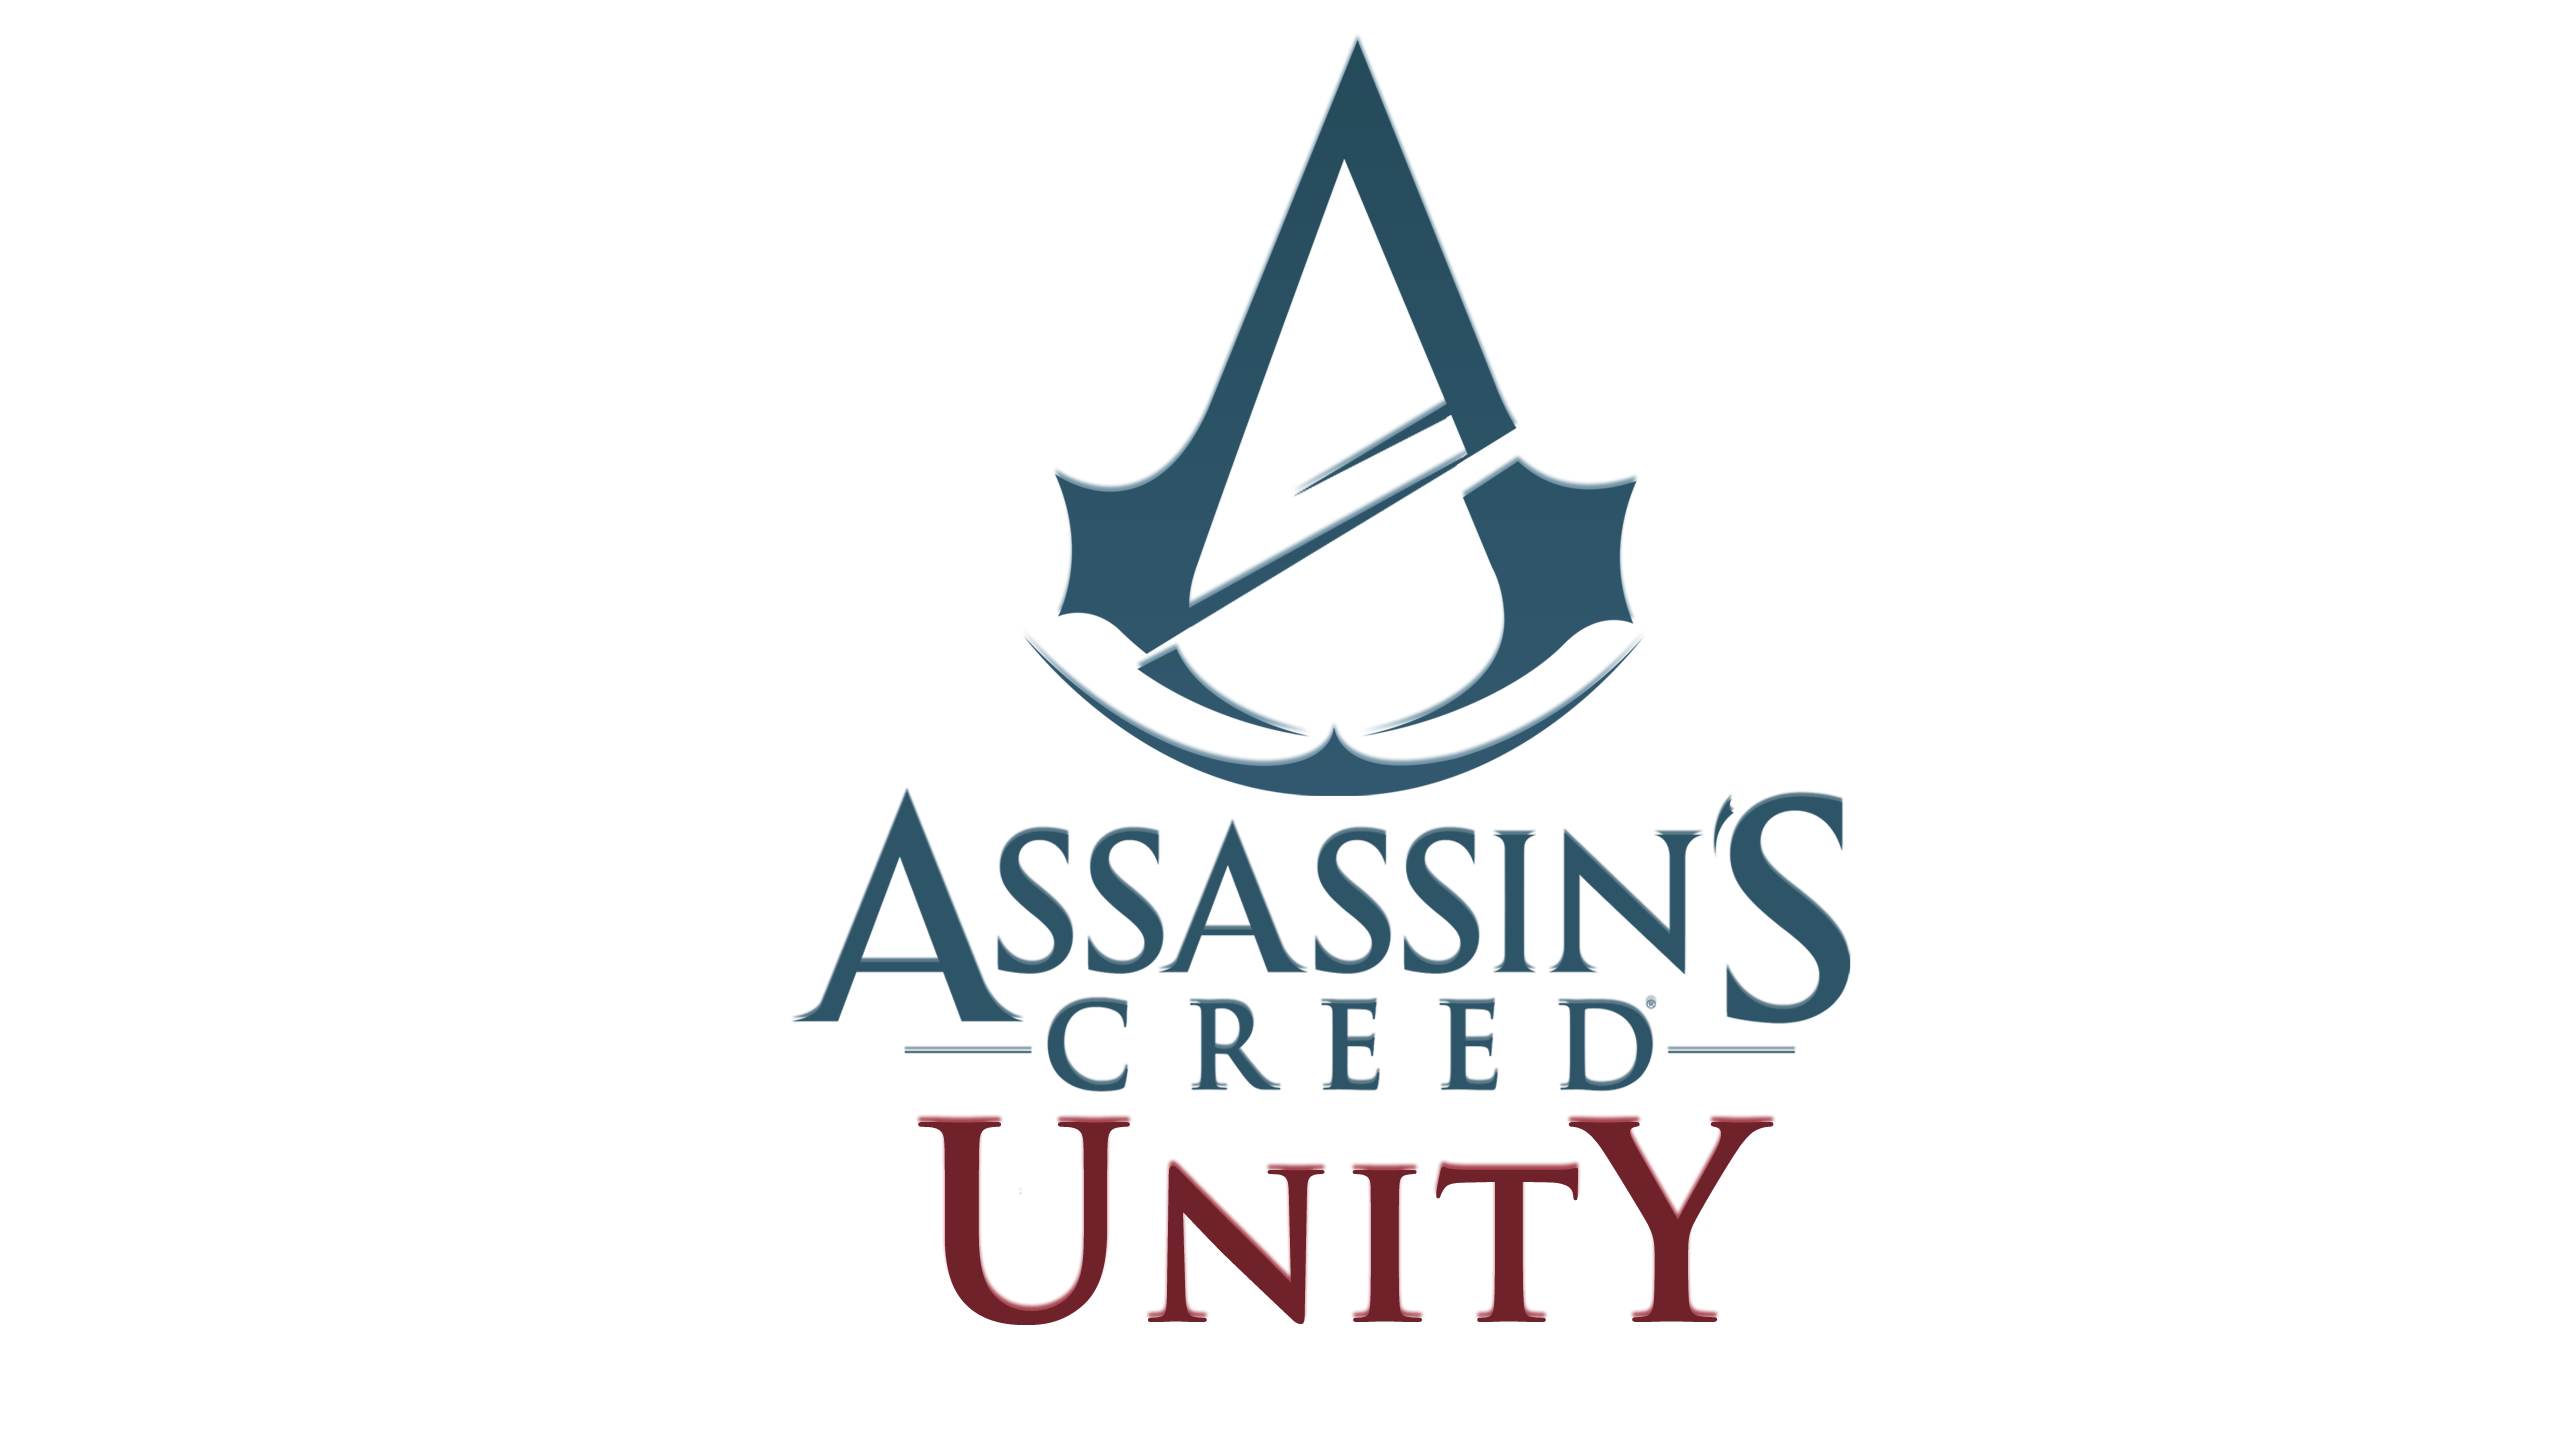 assassinand 39 s creed unity. assassinand 39 s creed unity